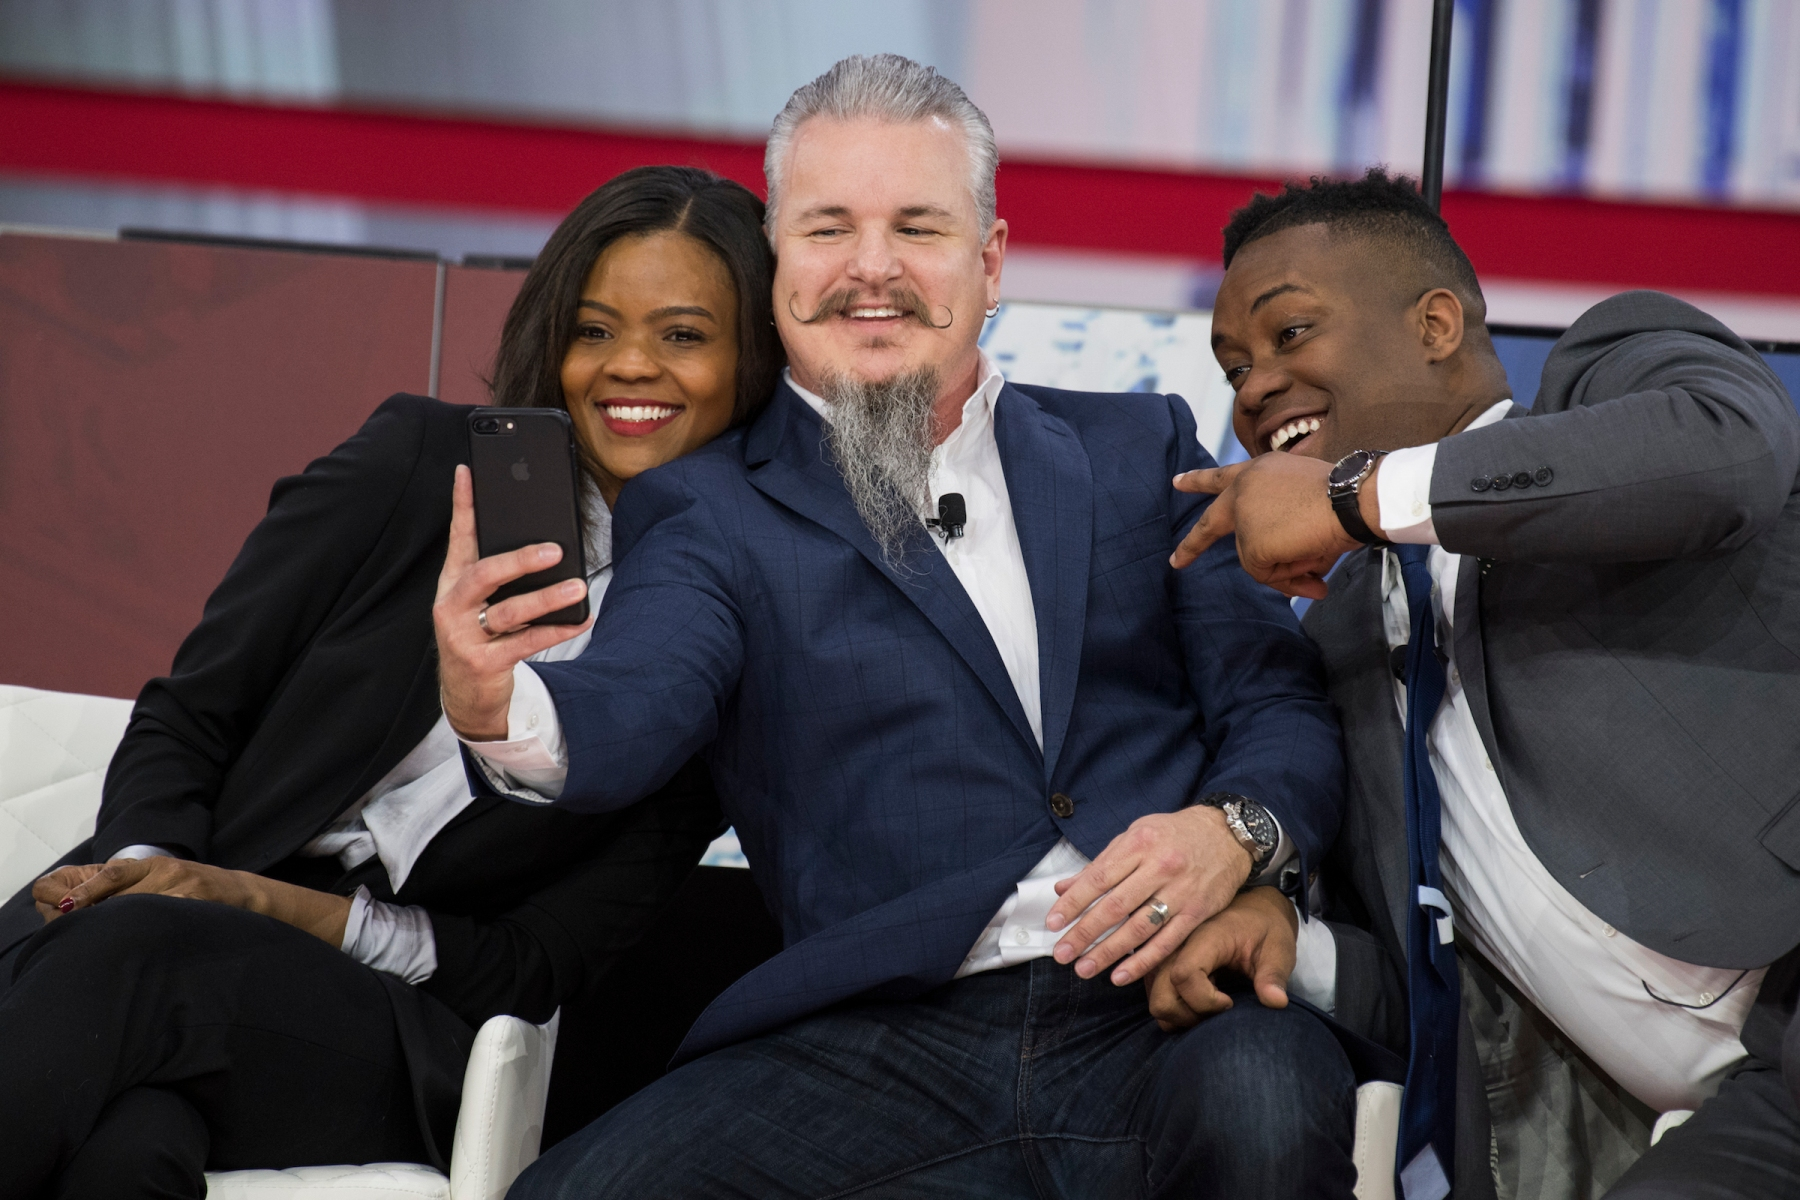 From left, Candace Owens, Chris Loesch, and Lawrence Jones III, take a selfie on stage at the Conservative Political Action Conference at the Gaylord National Resort in Oxon Hill, Md., on February 22, 2018. (Photo By Tom Williams/CQ Roll Call)